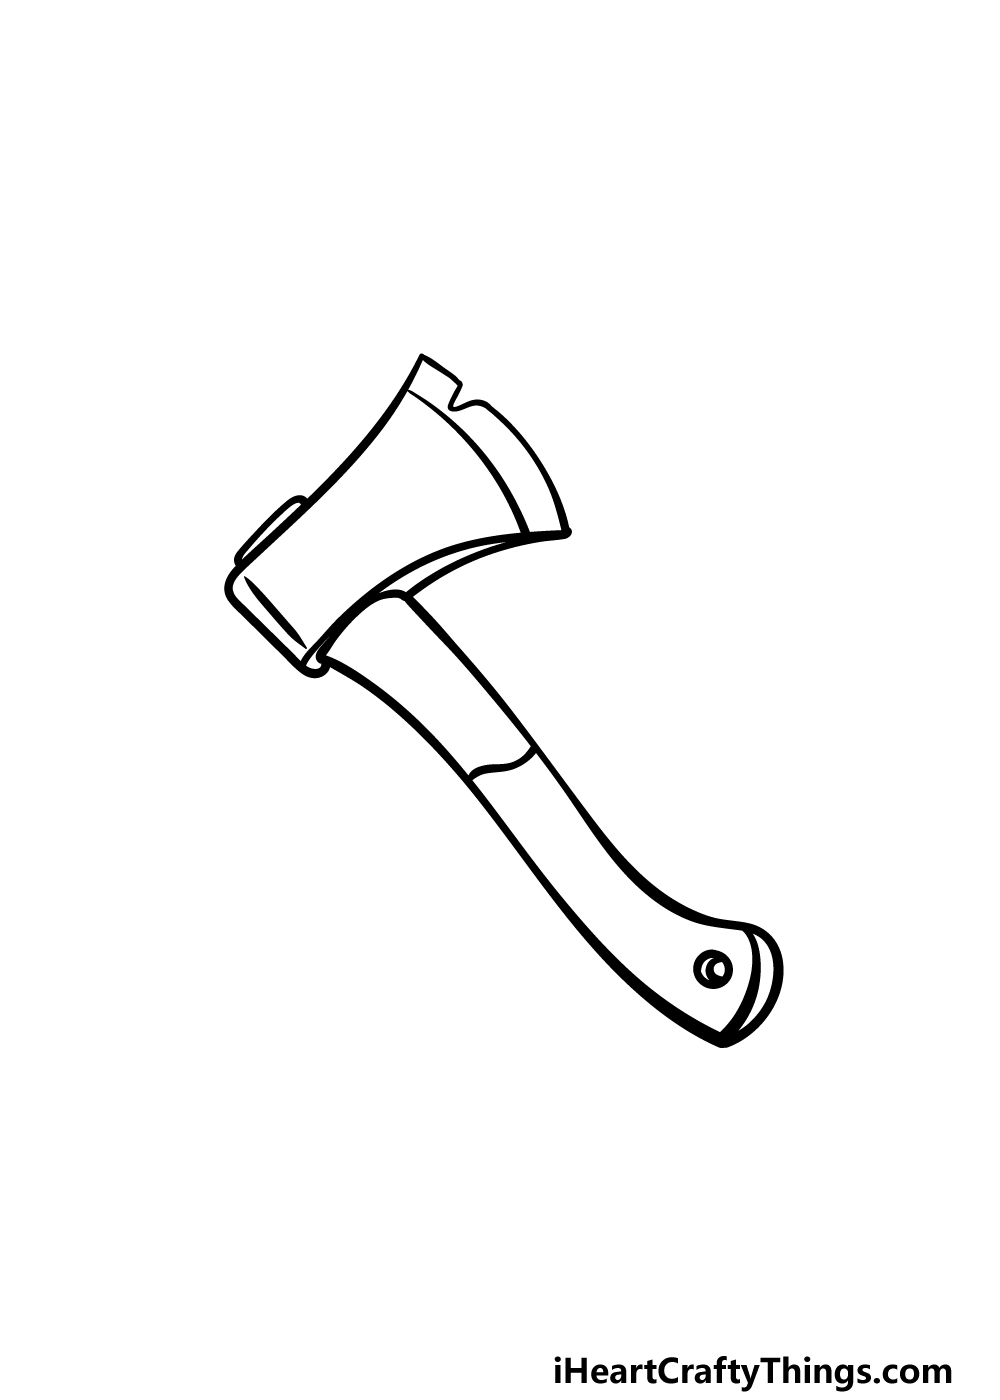 drawing an axe step 4